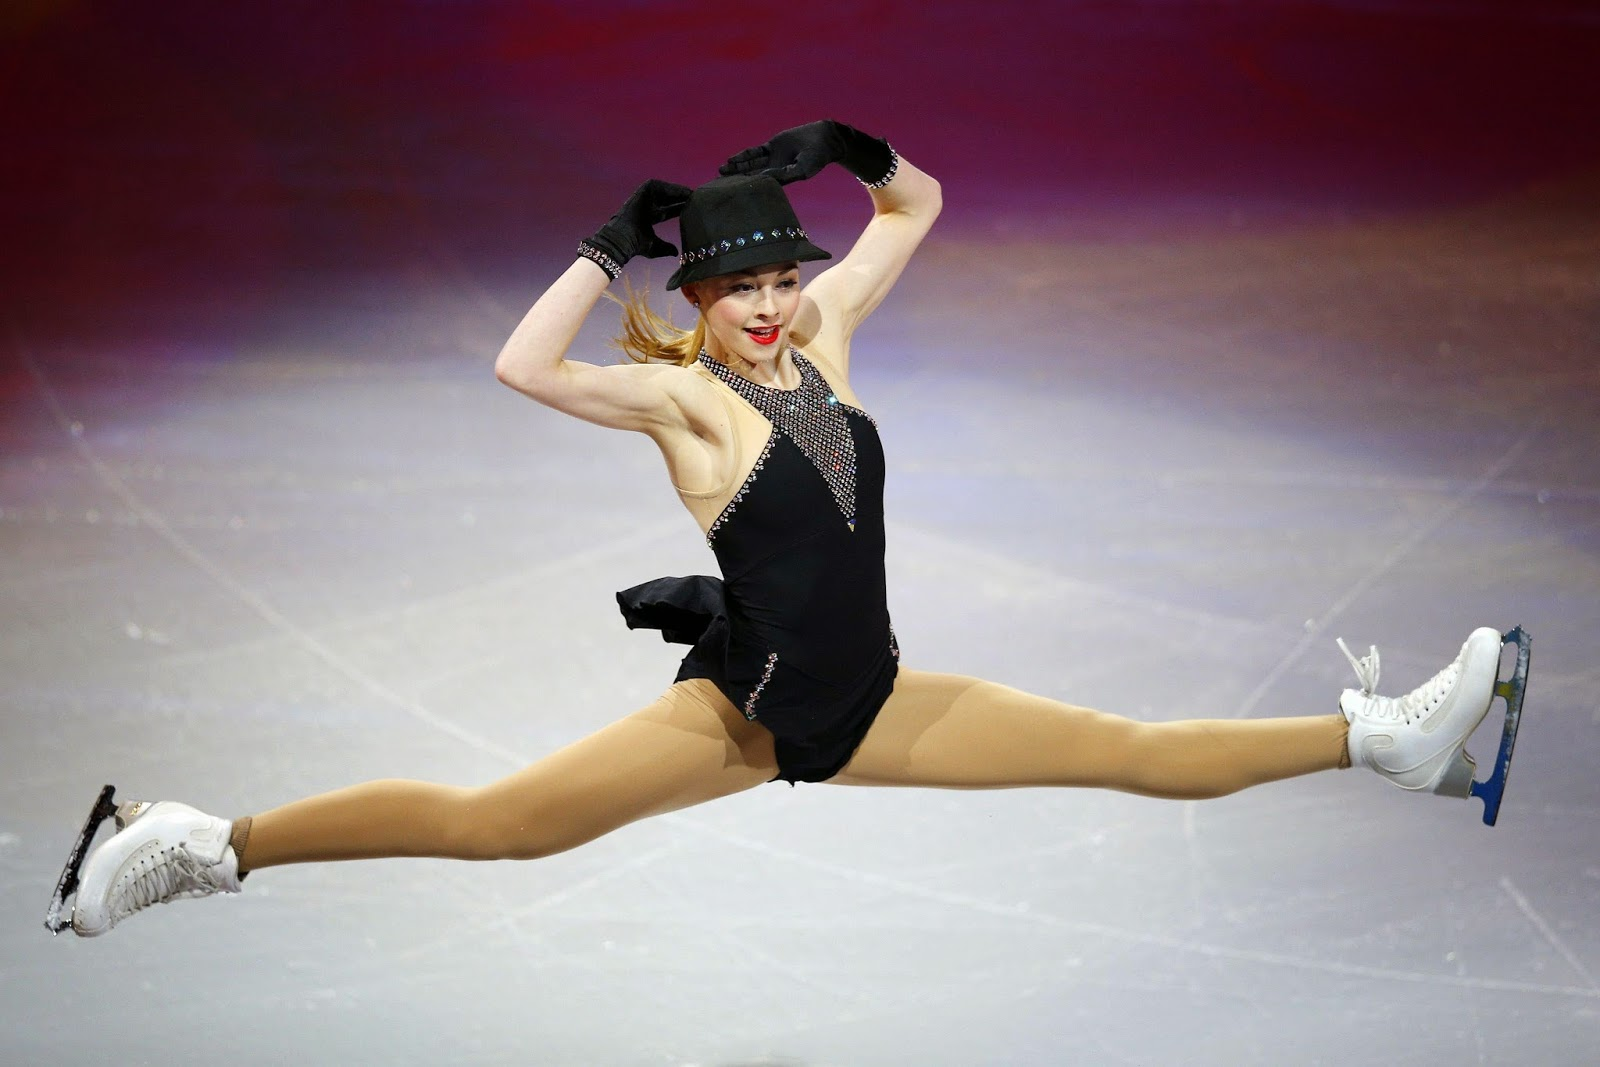 Olympian Gracie Gold finished third at her first competition of the season, falling in the short program and popping a jump in her free skate at Nebelhorn Trophy in Oberstdorf, Germany.